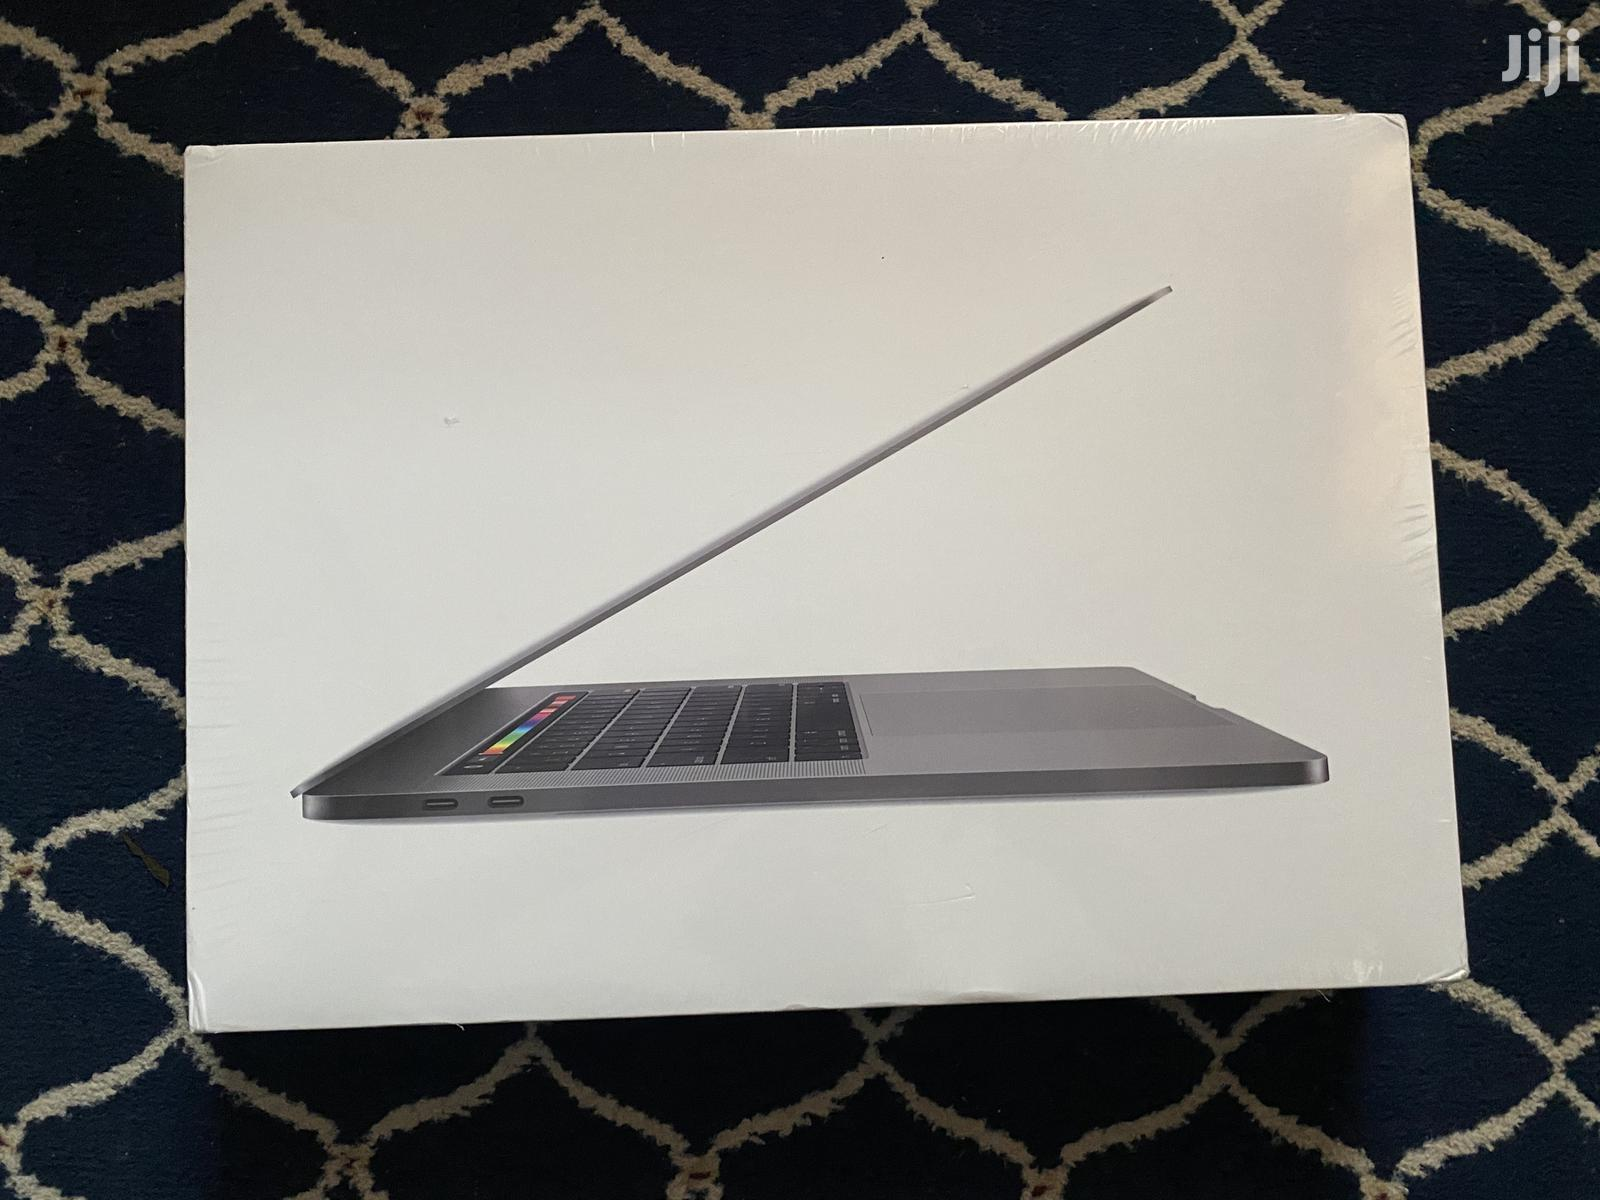 New Laptop Apple MacBook Pro 16GB Intel Core I9 SSD 512GB | Laptops & Computers for sale in East Legon, Greater Accra, Ghana